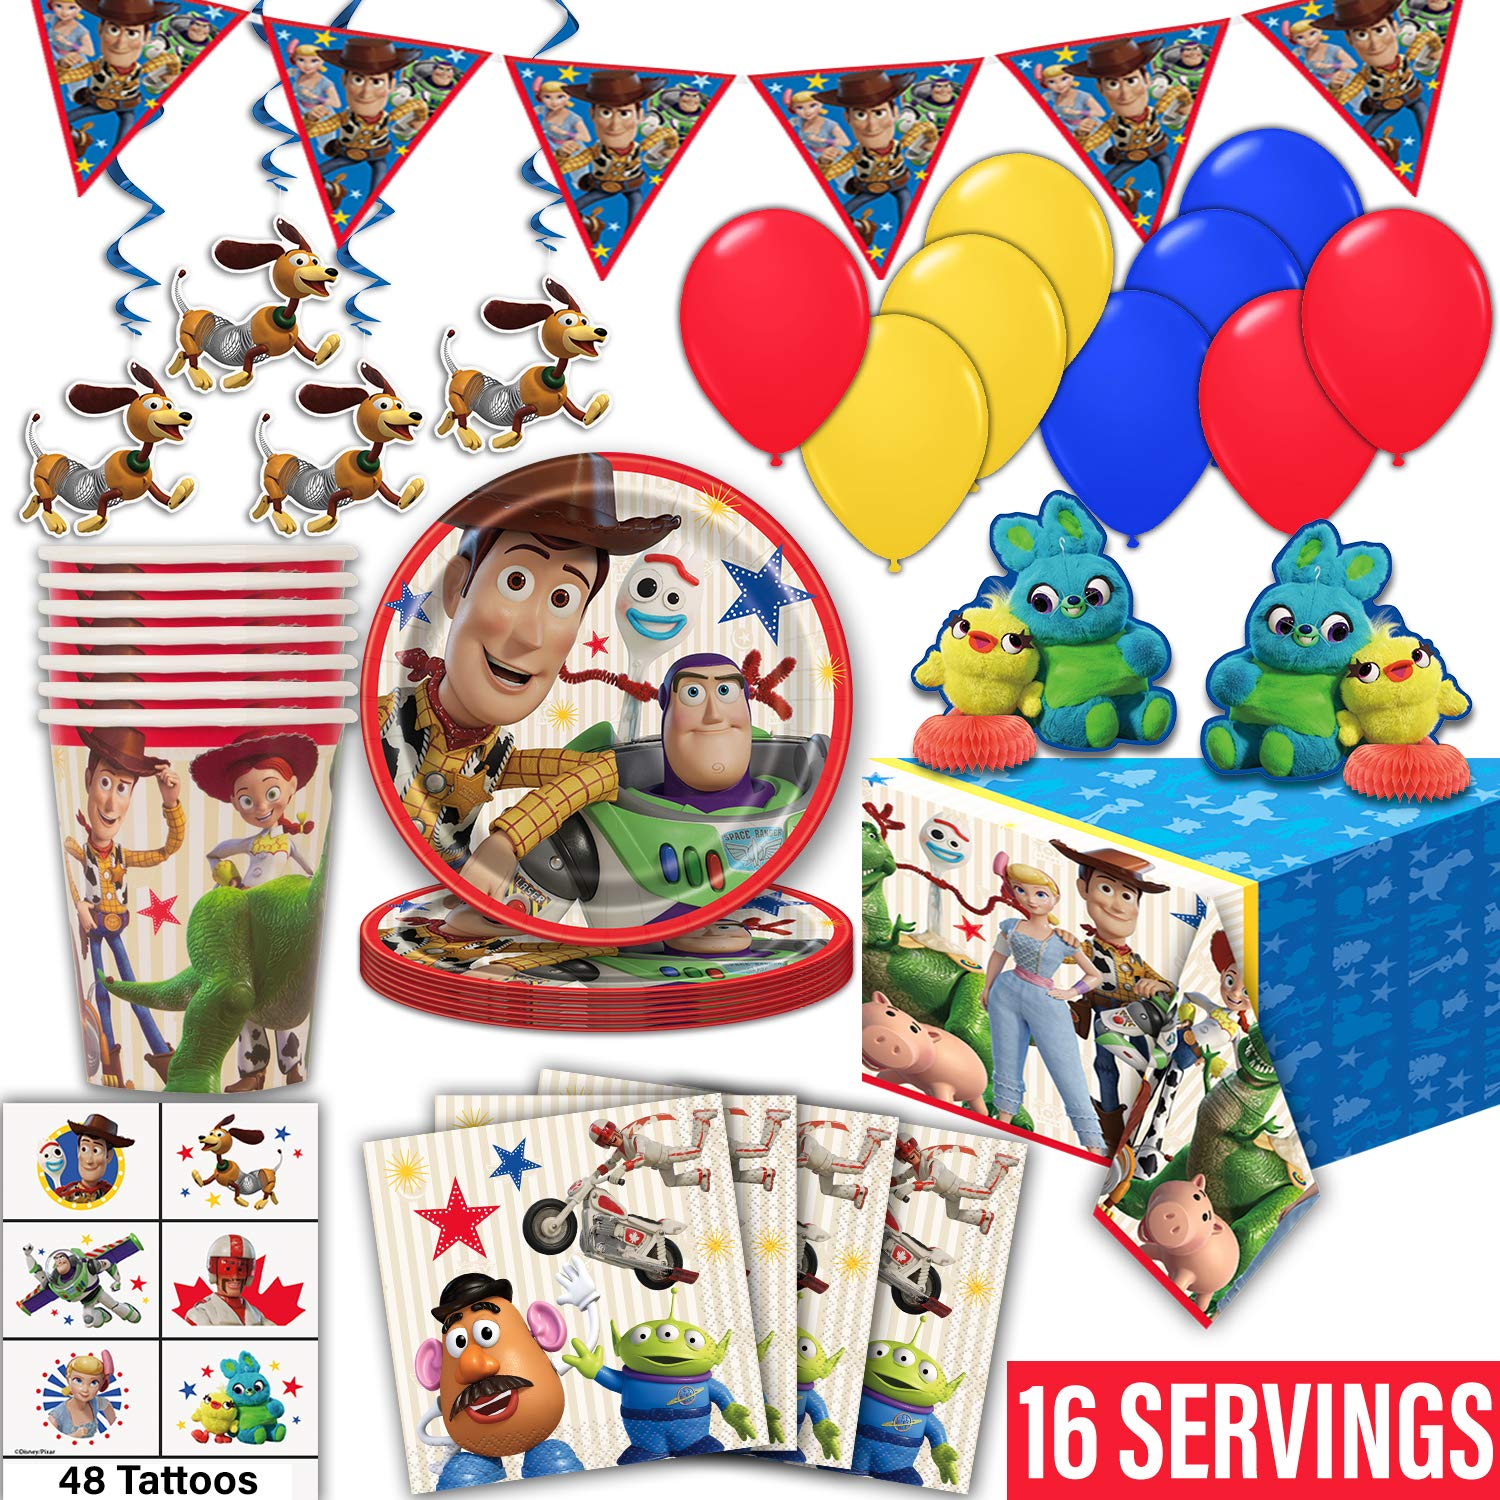 Toy Story 4 Party Supplies for 16- Plates, Cups, Napkin, Tablecloth, Banner, Hanging Swirls, Centerpieces, Tattoos, Balloons - Disposable Birthday Tableware, Decorations, Favors -Official Disney/Pixar by HeroFiber